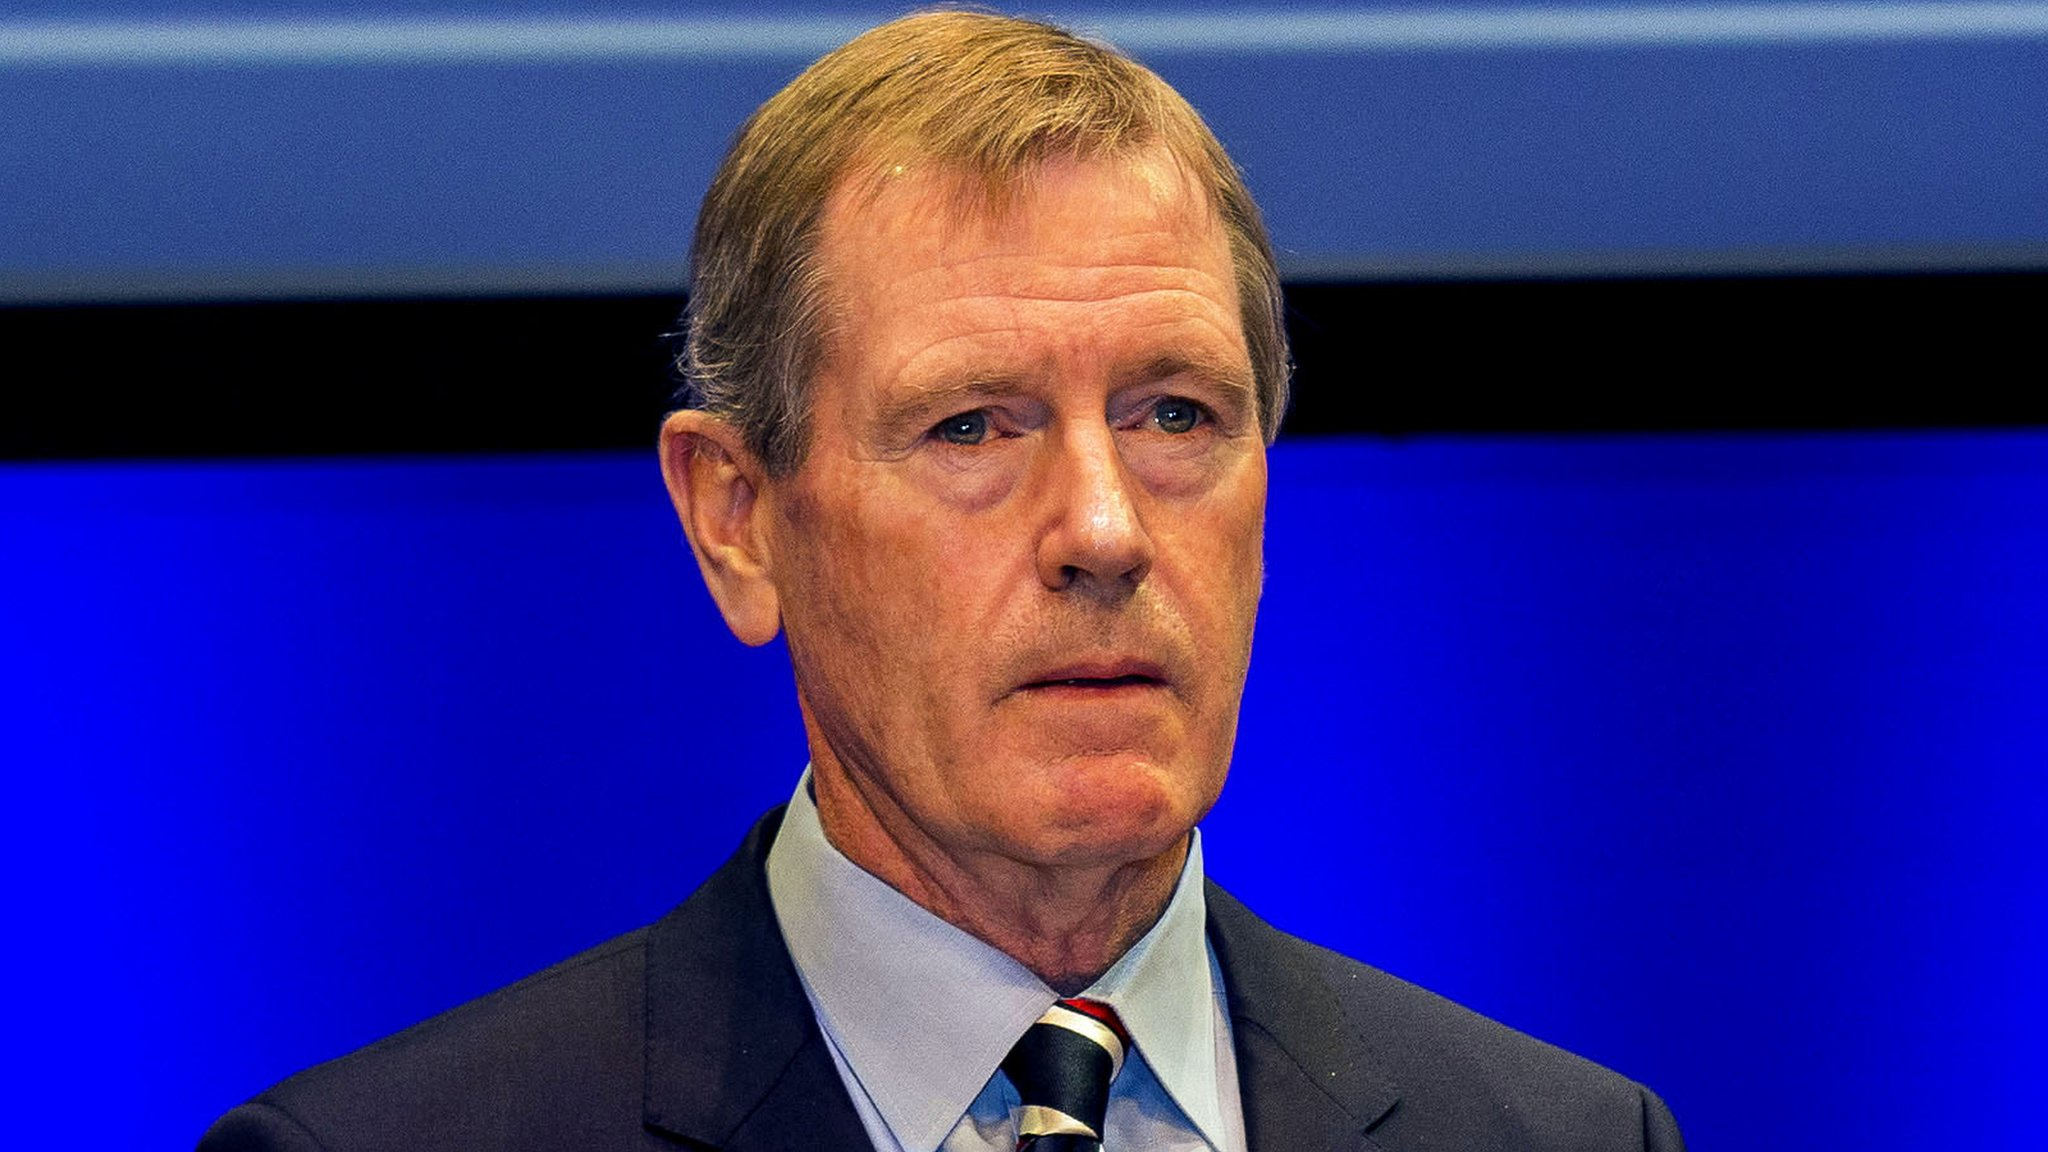 Rangers still aim to catch Celtic in 'reasonably foreseeable future' - Dave King